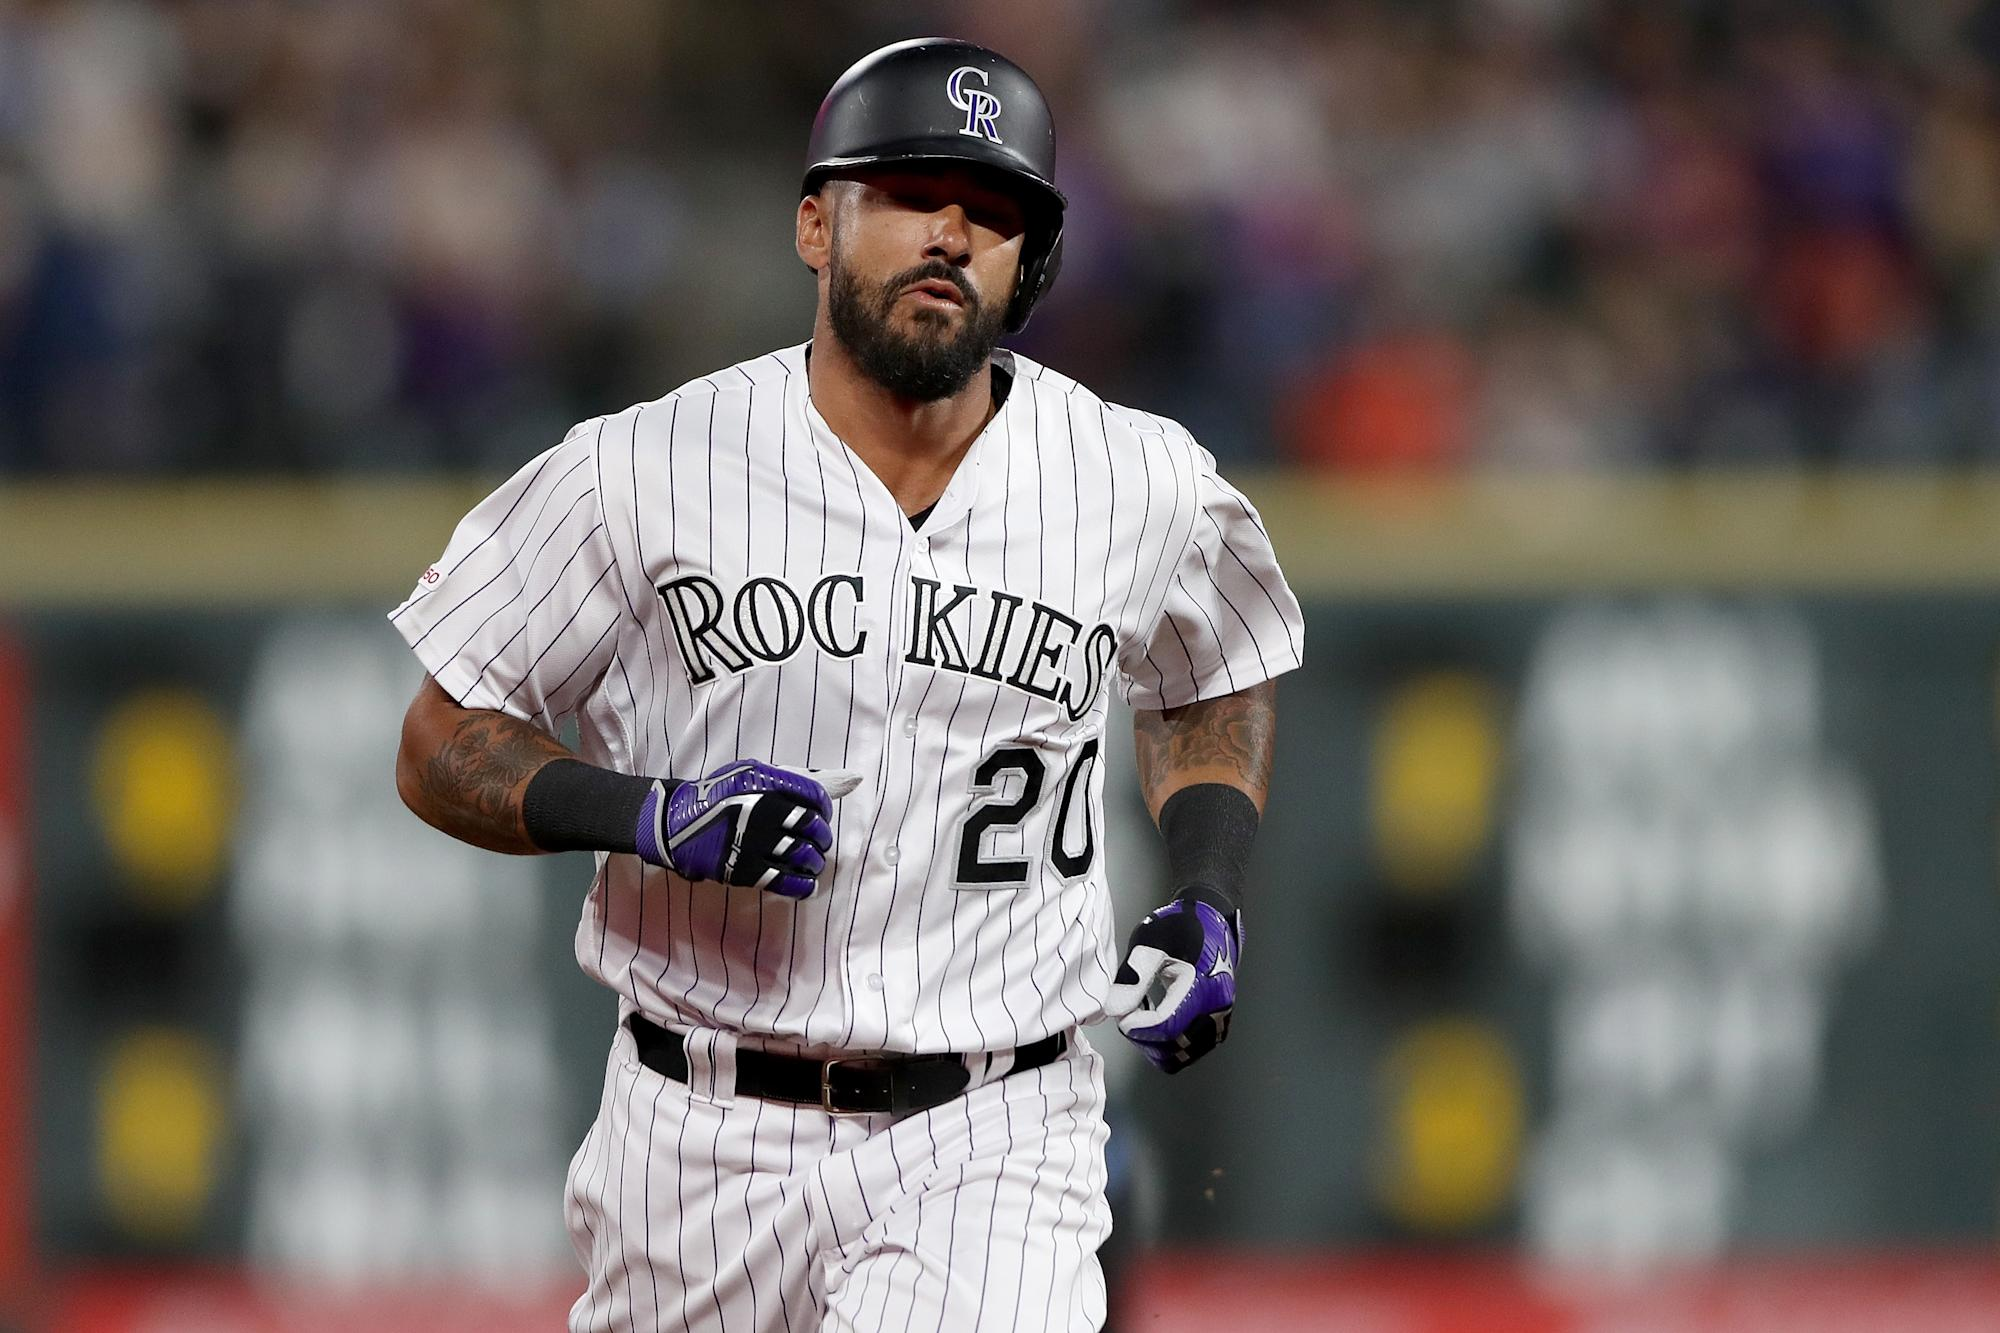 Rockies OF Ian Desmond opts out of second straight season 'for now' - Yahoo Sports